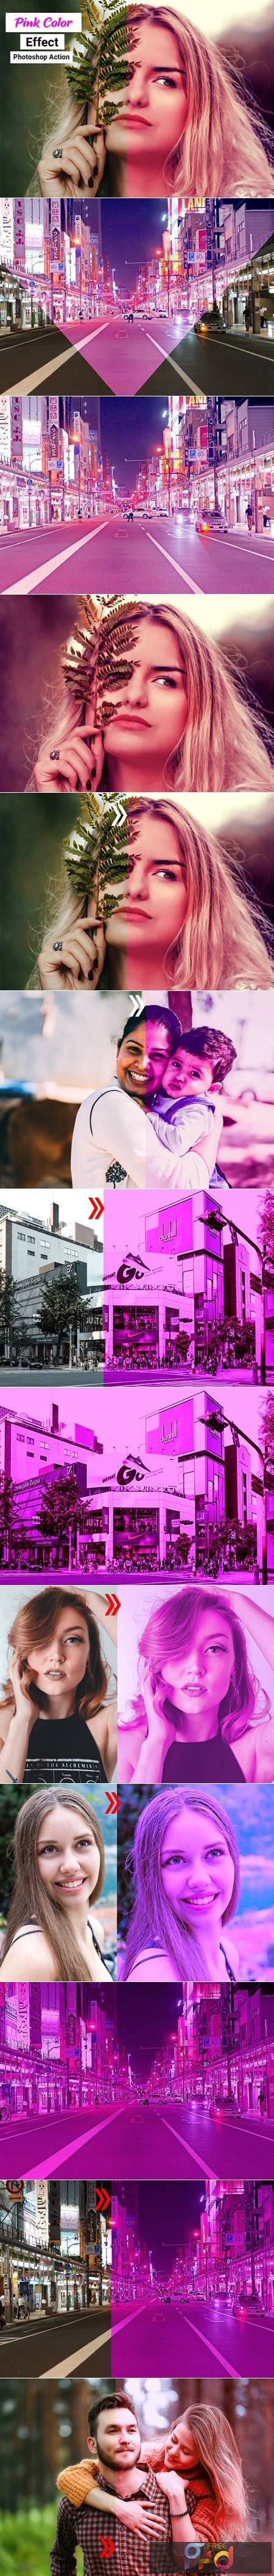 Pink Color Effect Photoshop Action 4910888 1